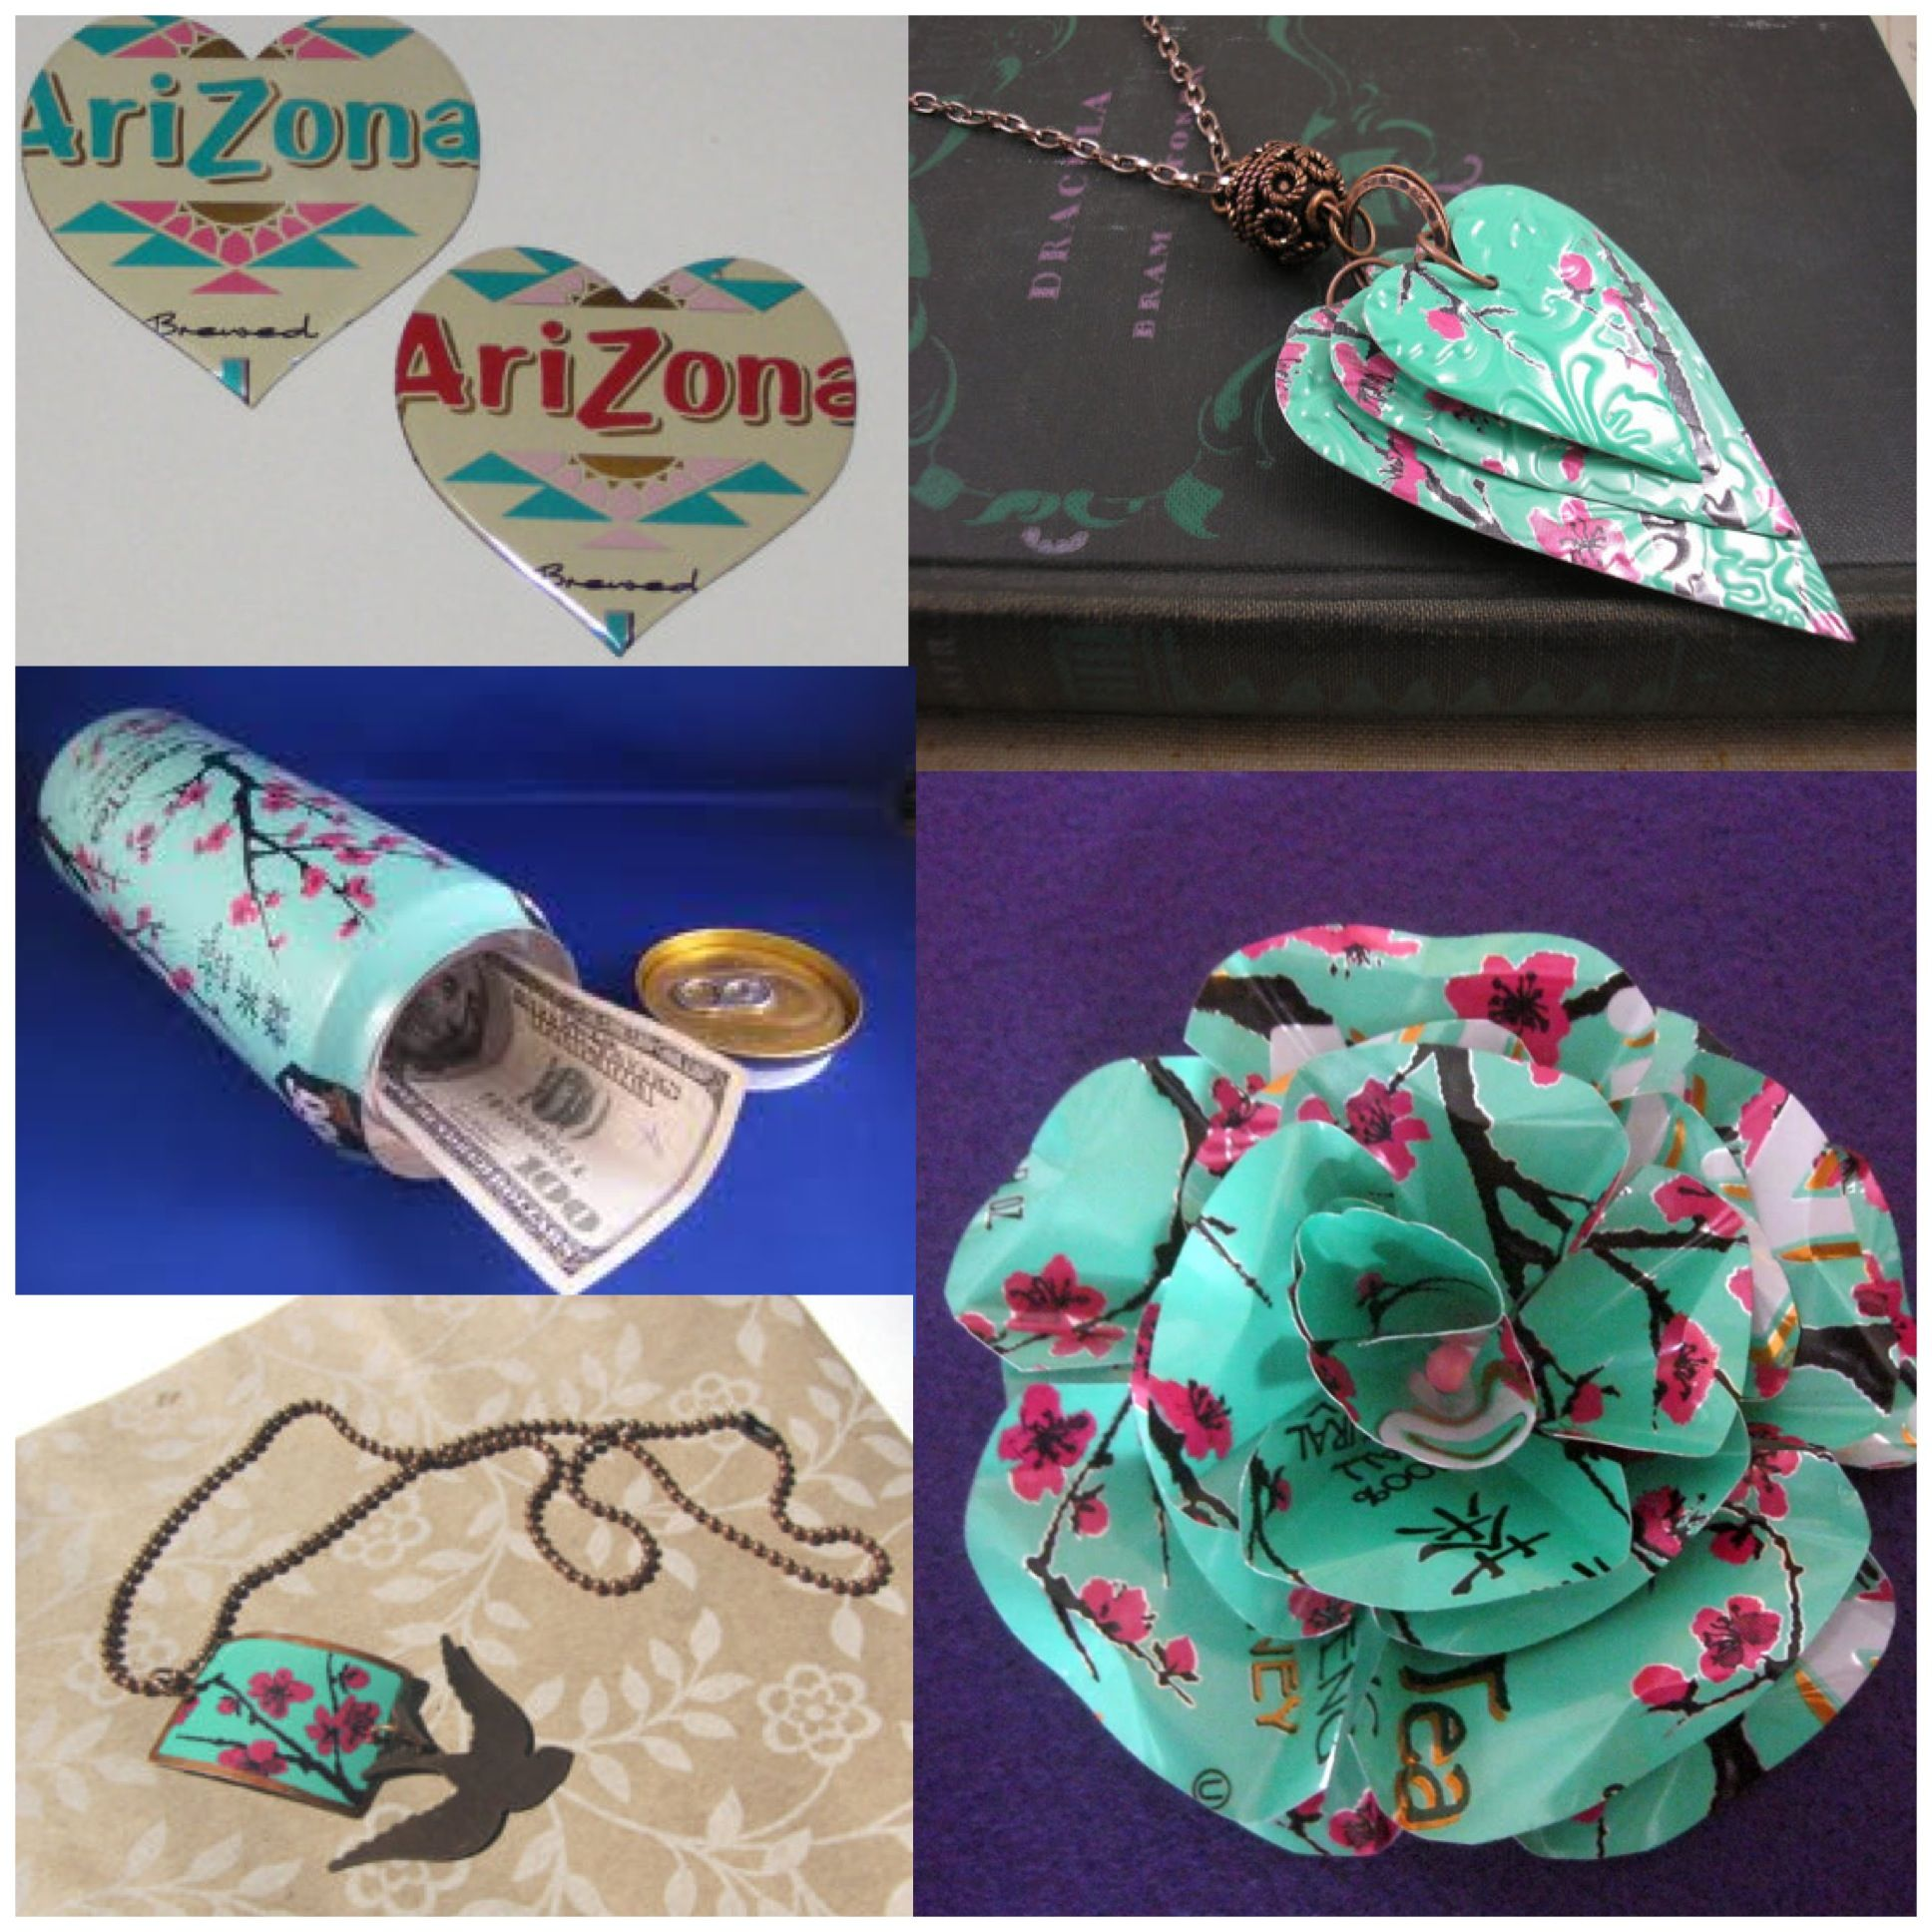 CRAFTS with arizona tea cans